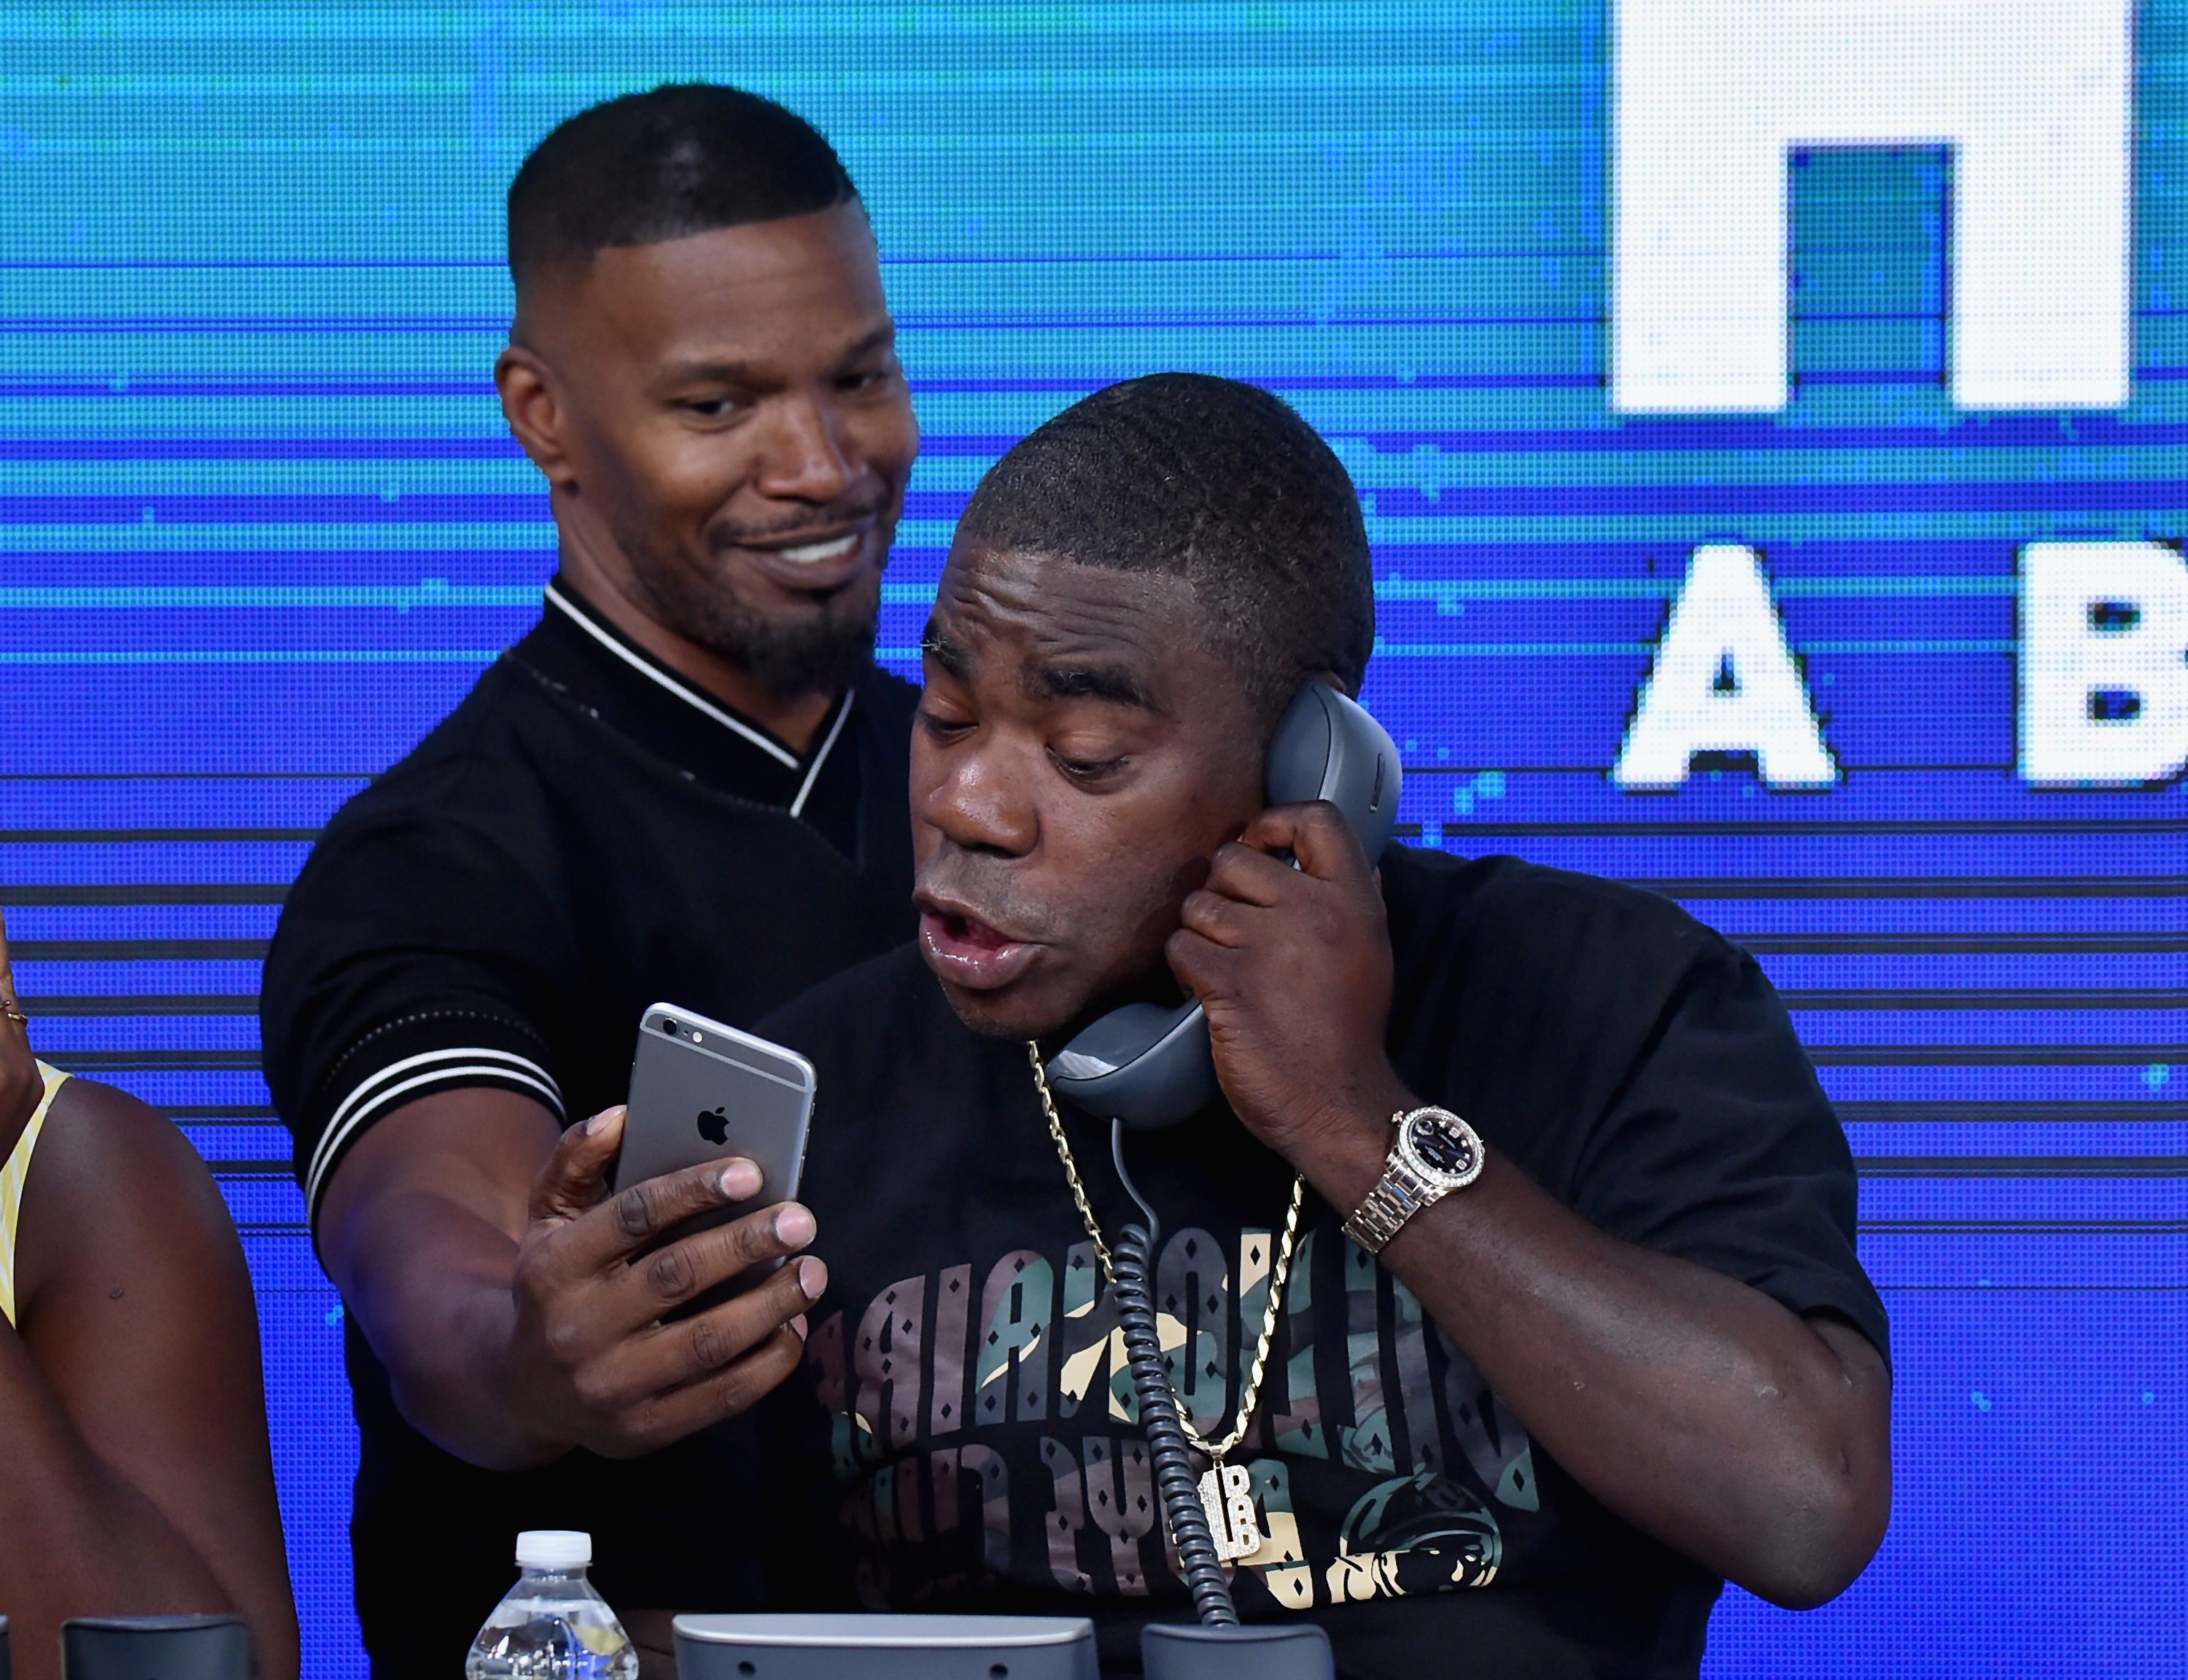 "<div class=""meta image-caption""><div class=""origin-logo origin-image none""><span>none</span></div><span class=""caption-text"">Jamie Foxx and Tracy Morgan attend the Hand in Hand benefit at ABC News' Good Morning America Times Square Studio in New York. (Theo Wargo/Hand in Hand/Getty Images)</span></div>"